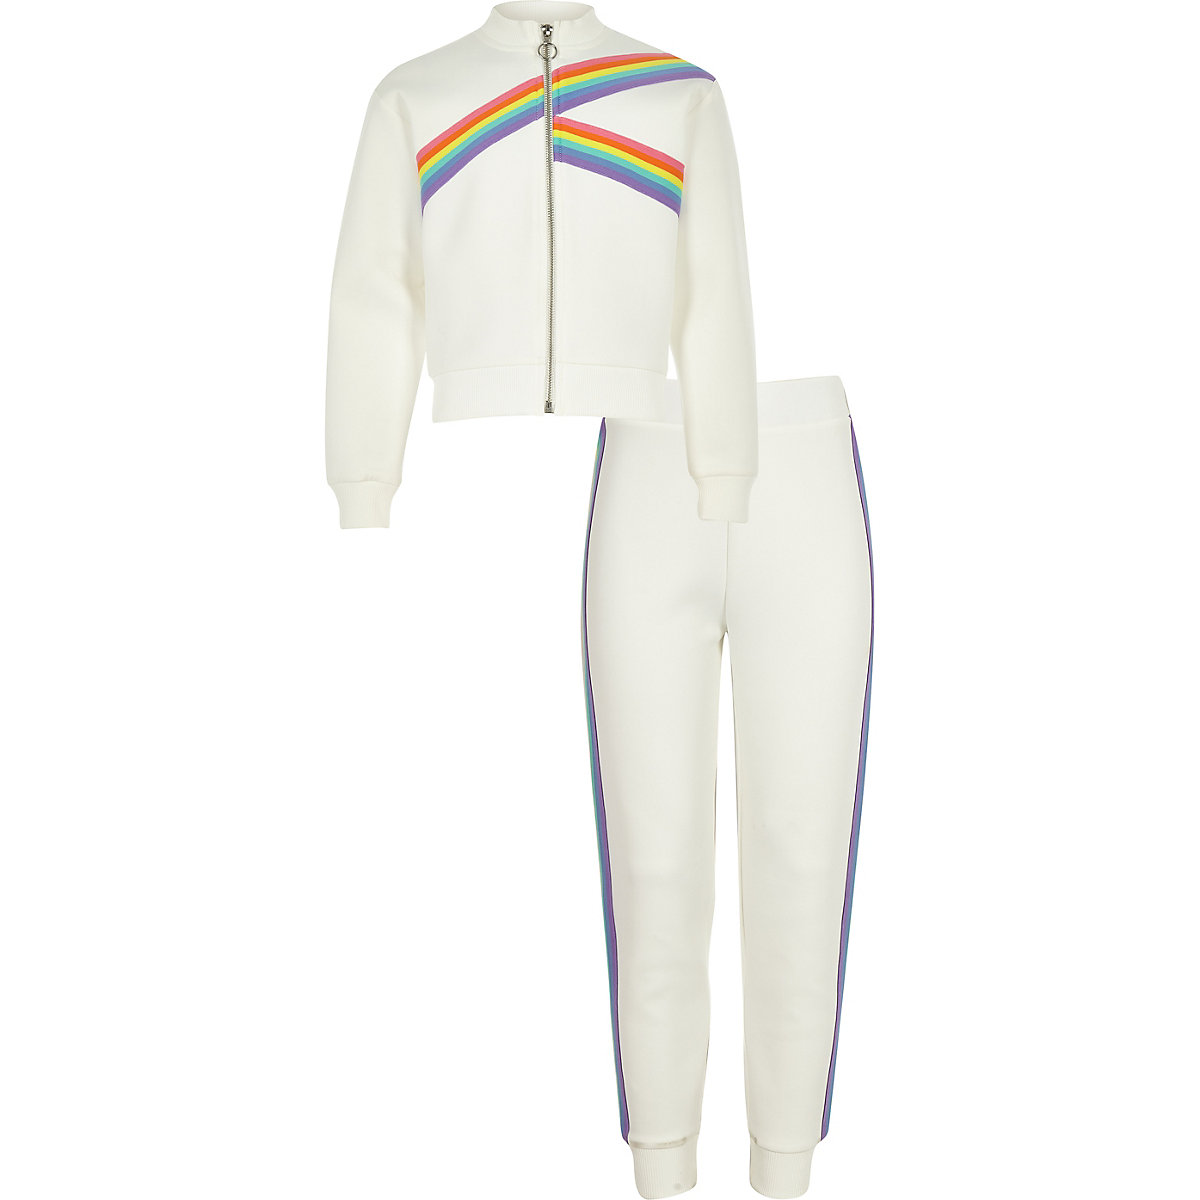 Girls white rainbow tape track outfit